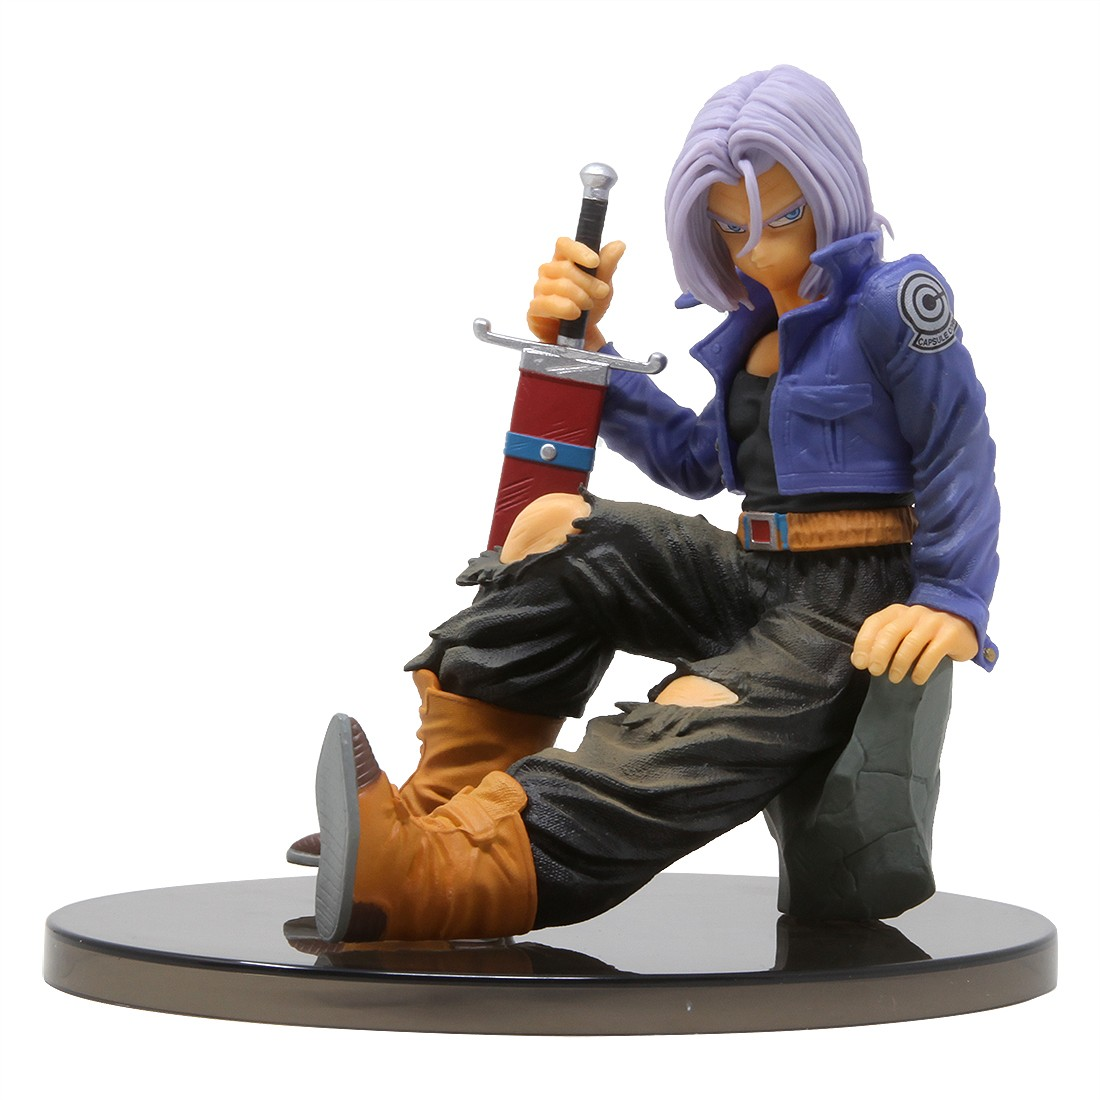 Banpresto Dragon Ball Z Banpresto World Figure Colosseum 2 Vol. 8 Trunks Figure (blue)